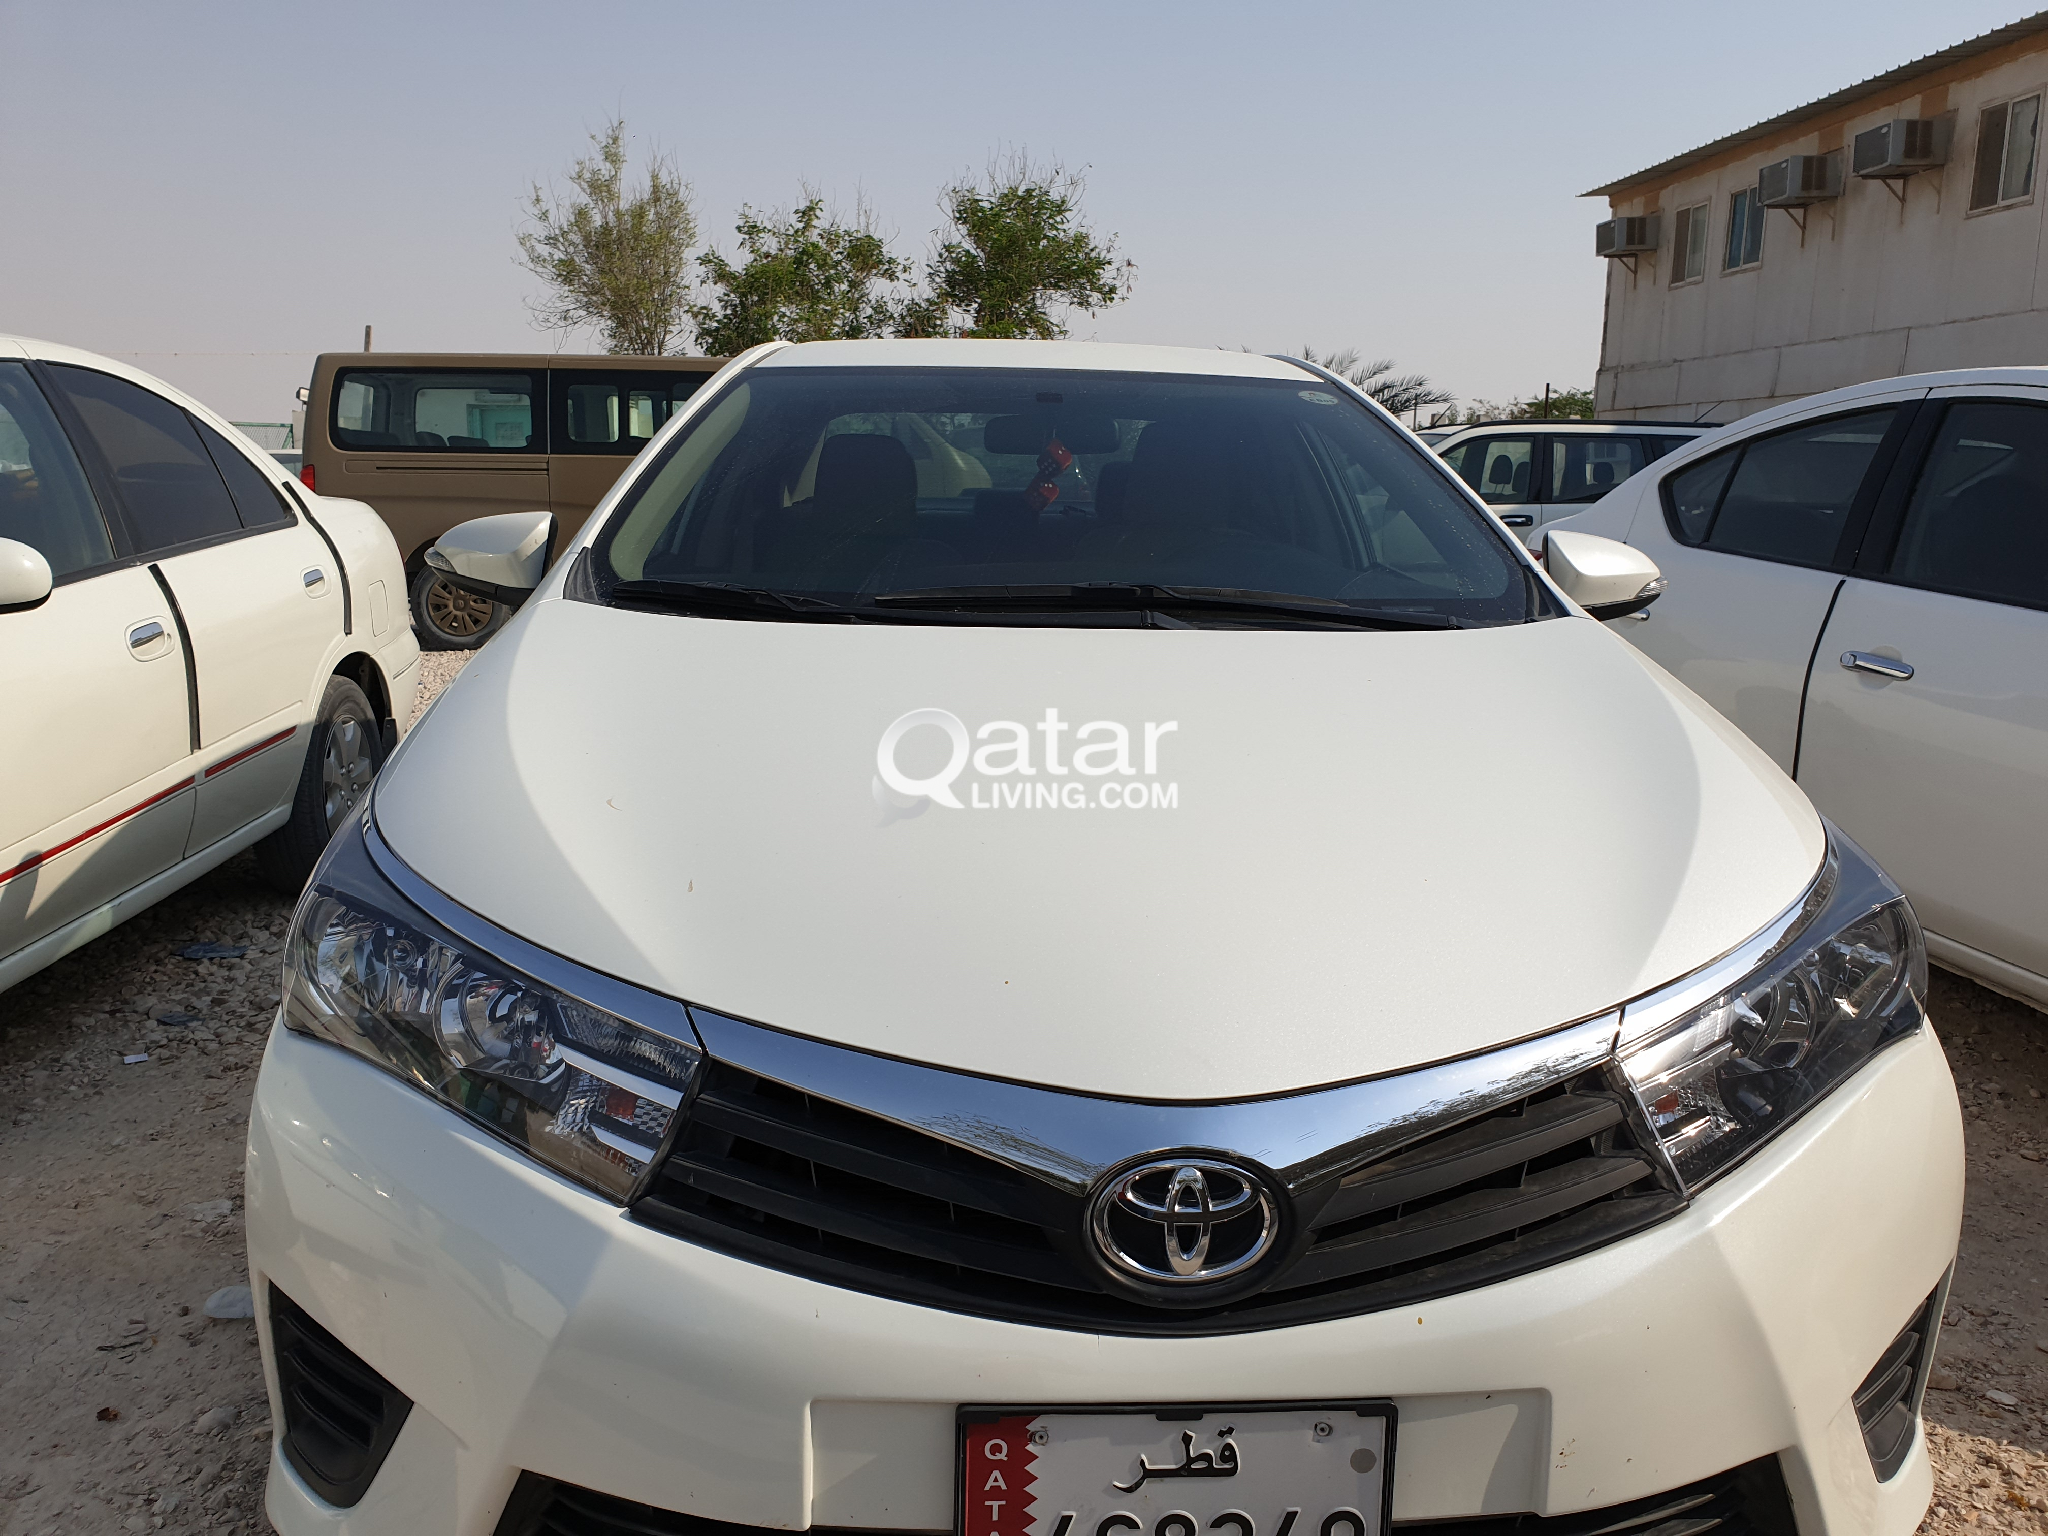 2016 model 2017 registered Corolla 2 litre